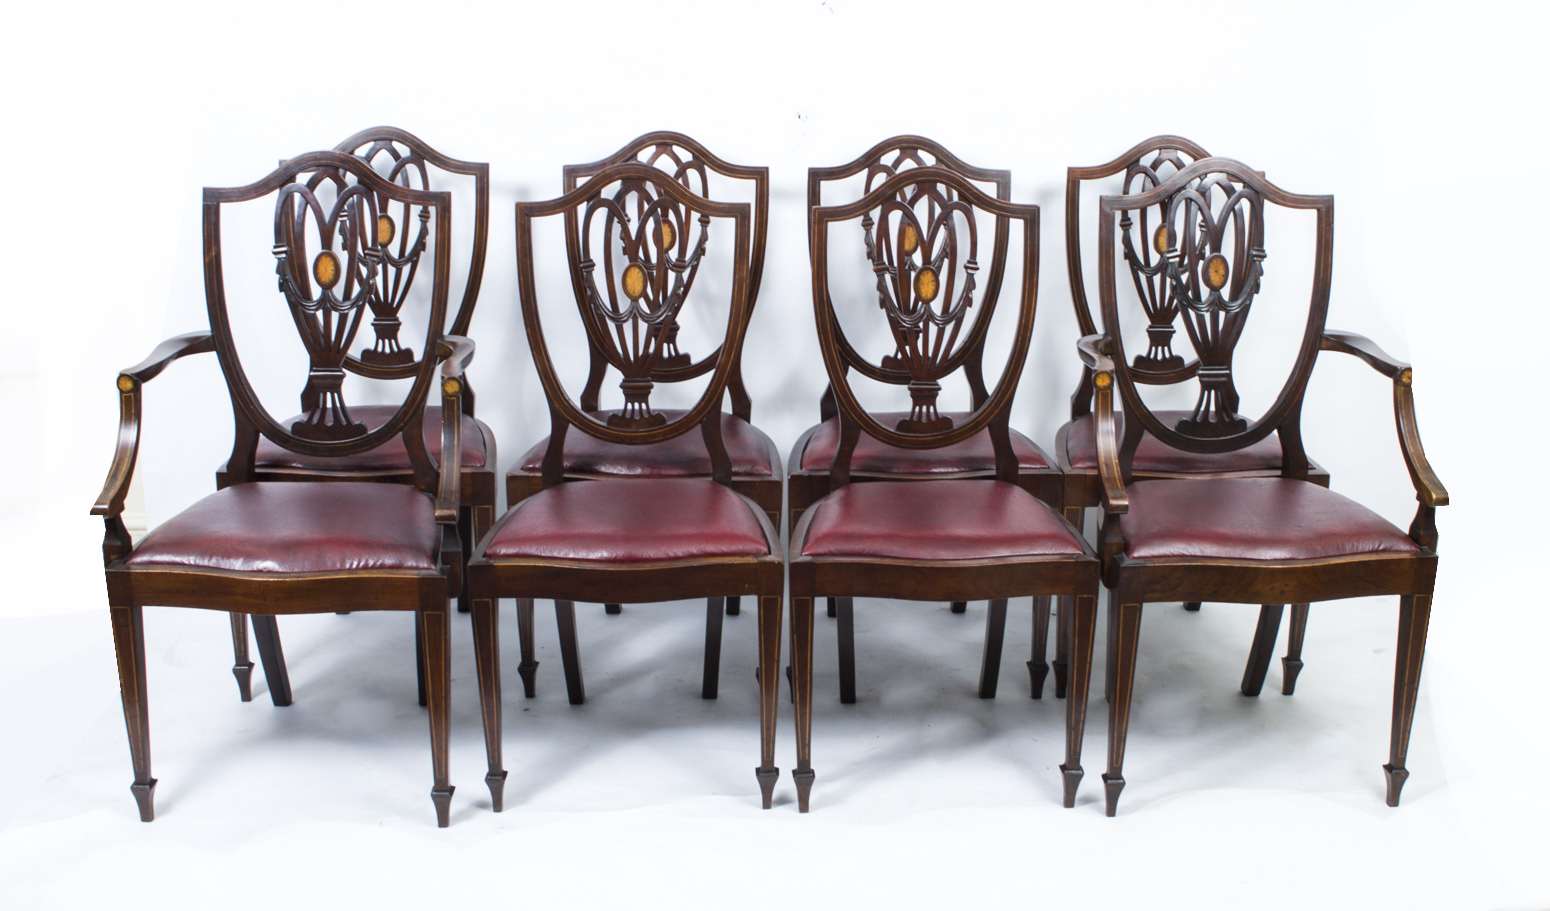 Set 8 English Antique Hepplewhite Dining Chairs | Hepplewhite Style Chairs - Set 8 English Antique Hepplewhite Dining Chairs Hepplewhite